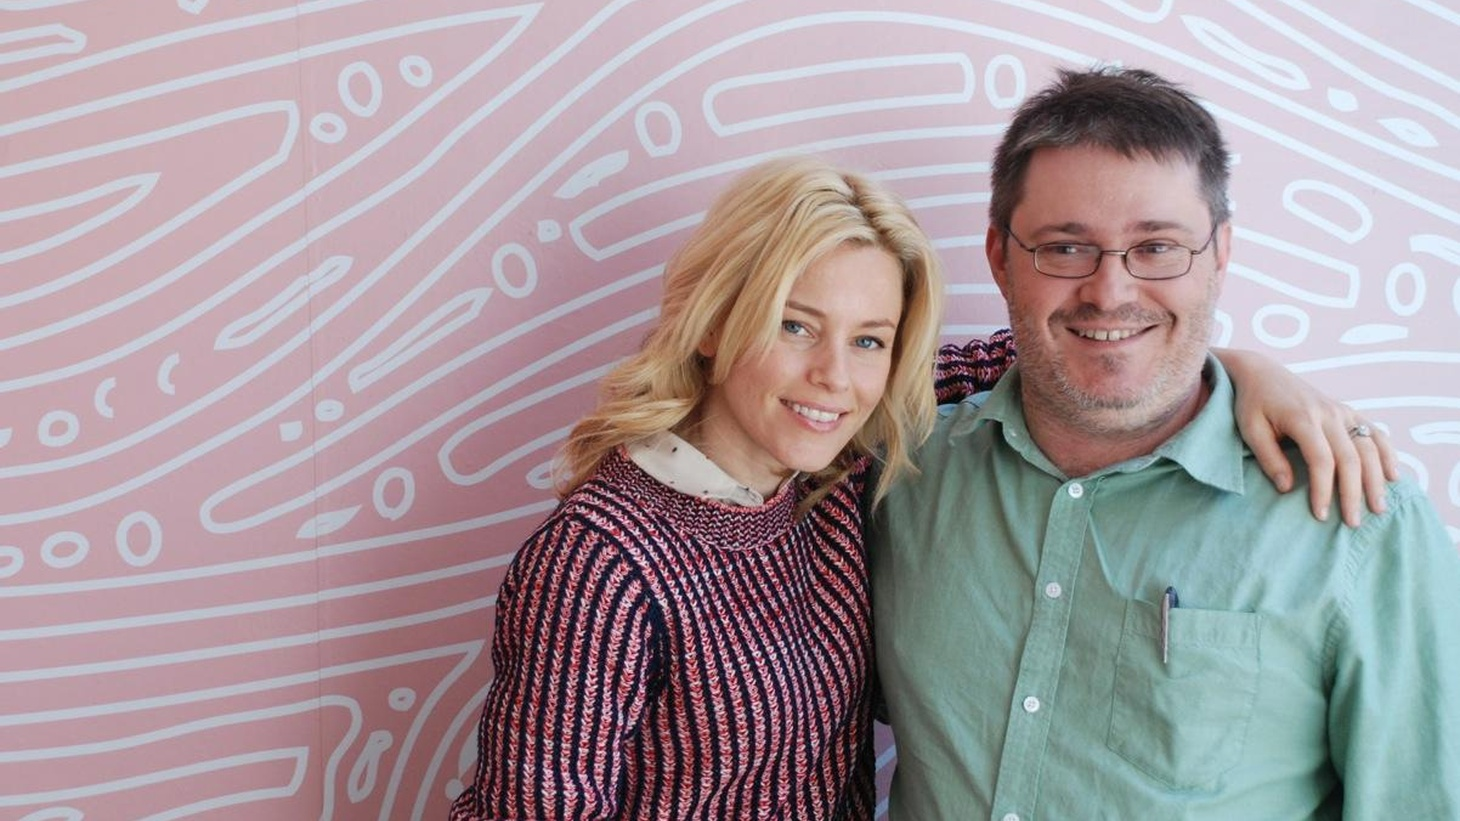 Actress Elizabeth Banks is a self-proclaimed goofball but her Guest DJ set is smart, sincere and quite sexy. She takes us through songs that mark her move to Hollywood and a track that tugs at her heart strings.